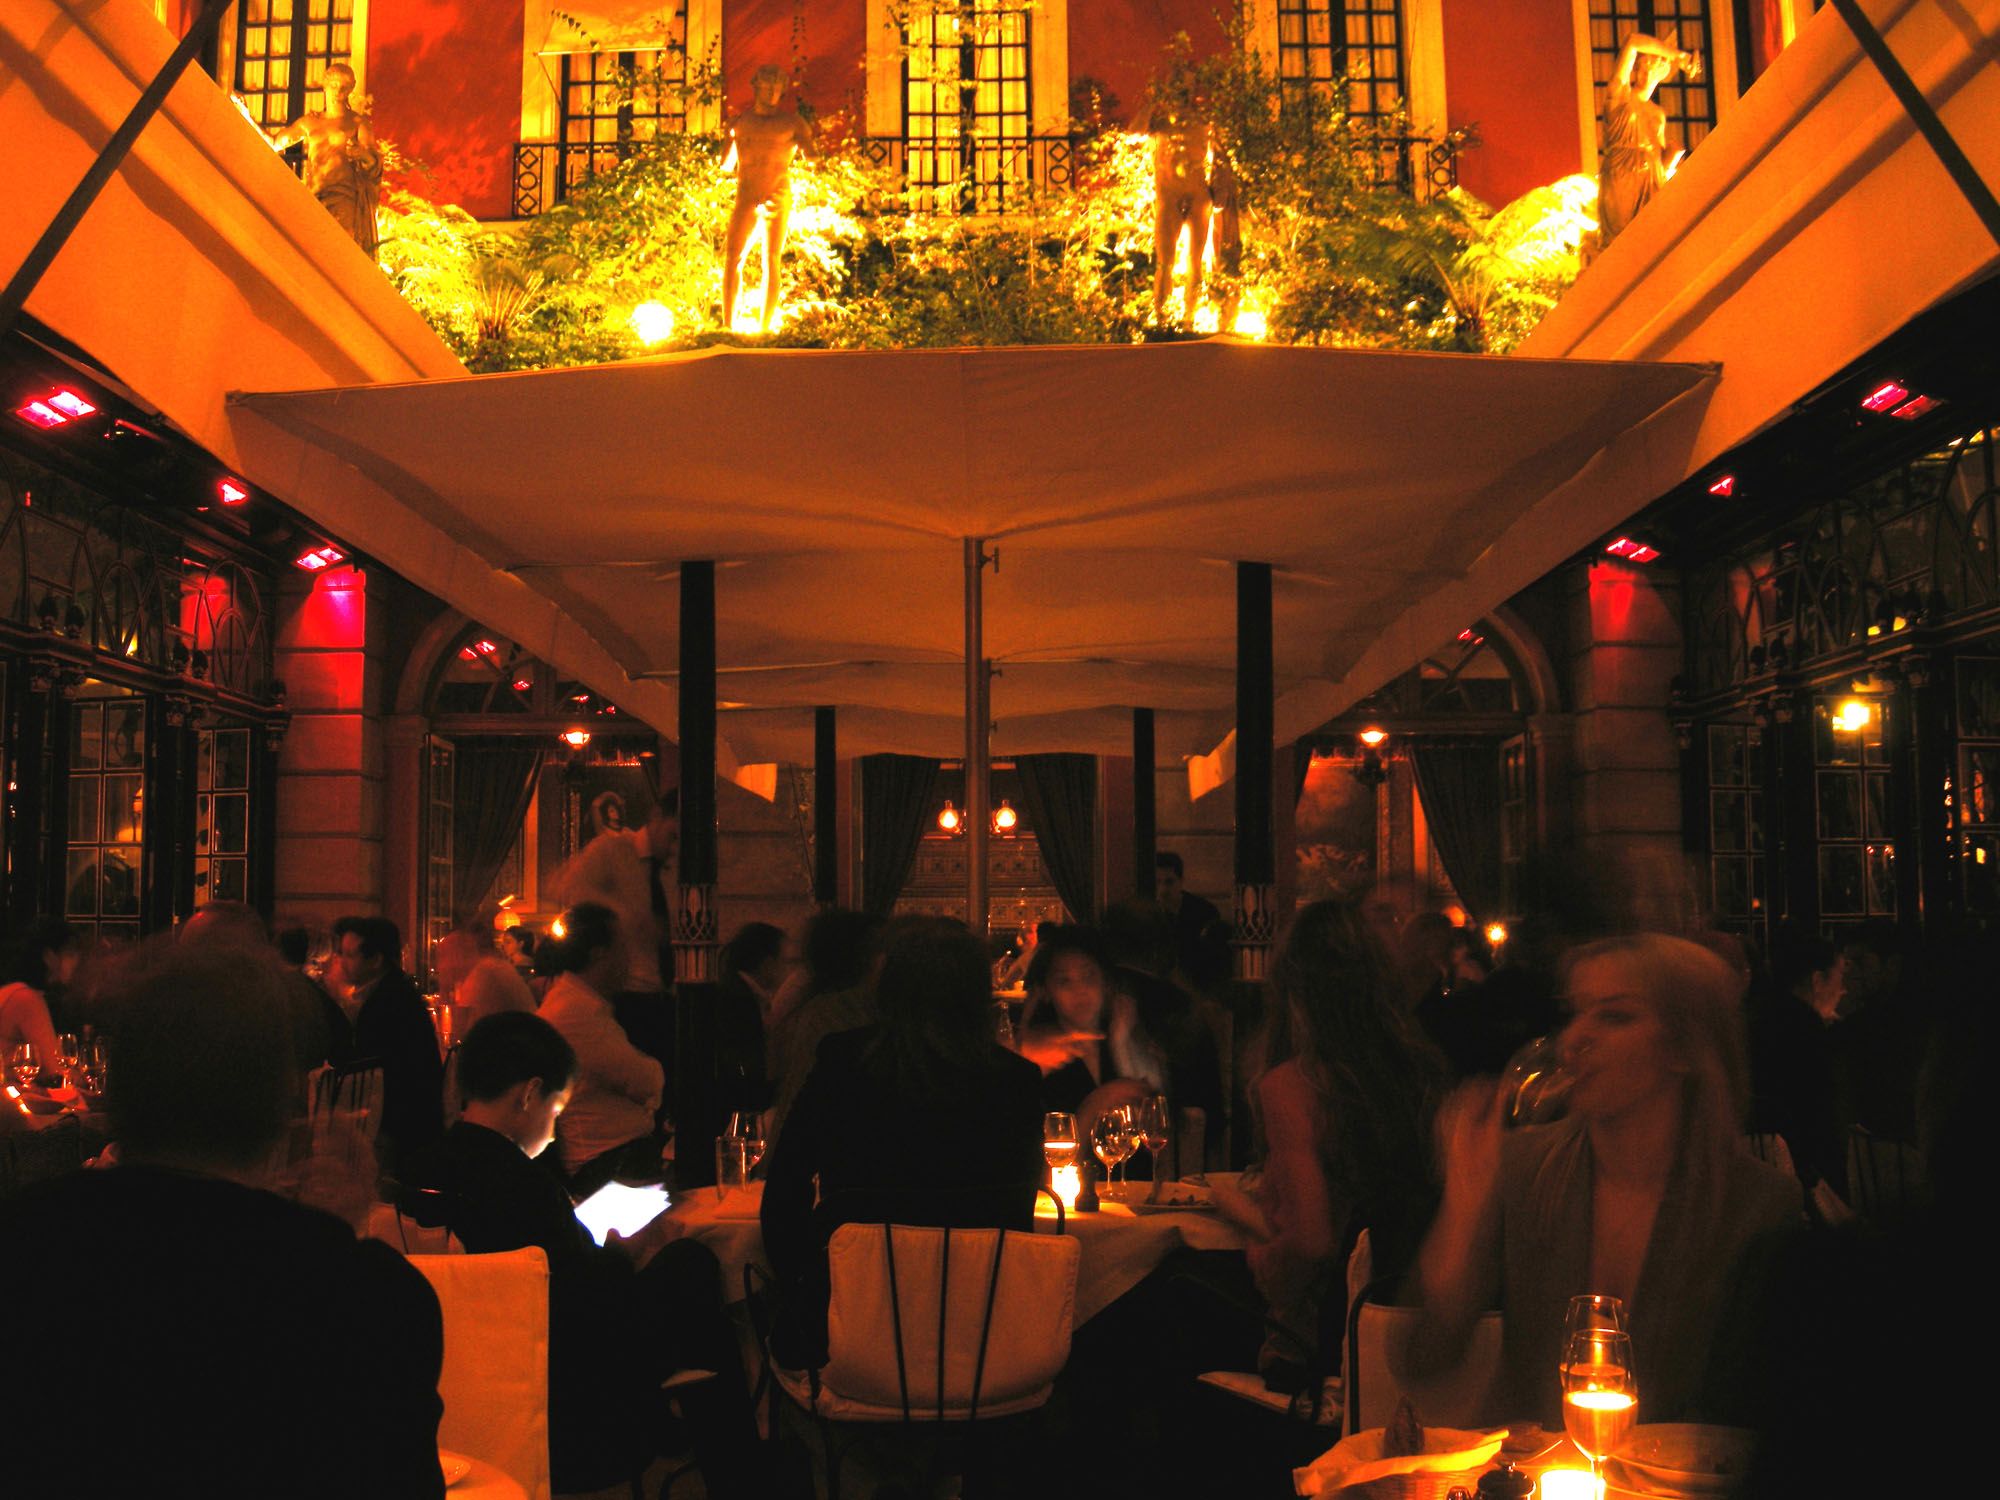 Hotel Costes